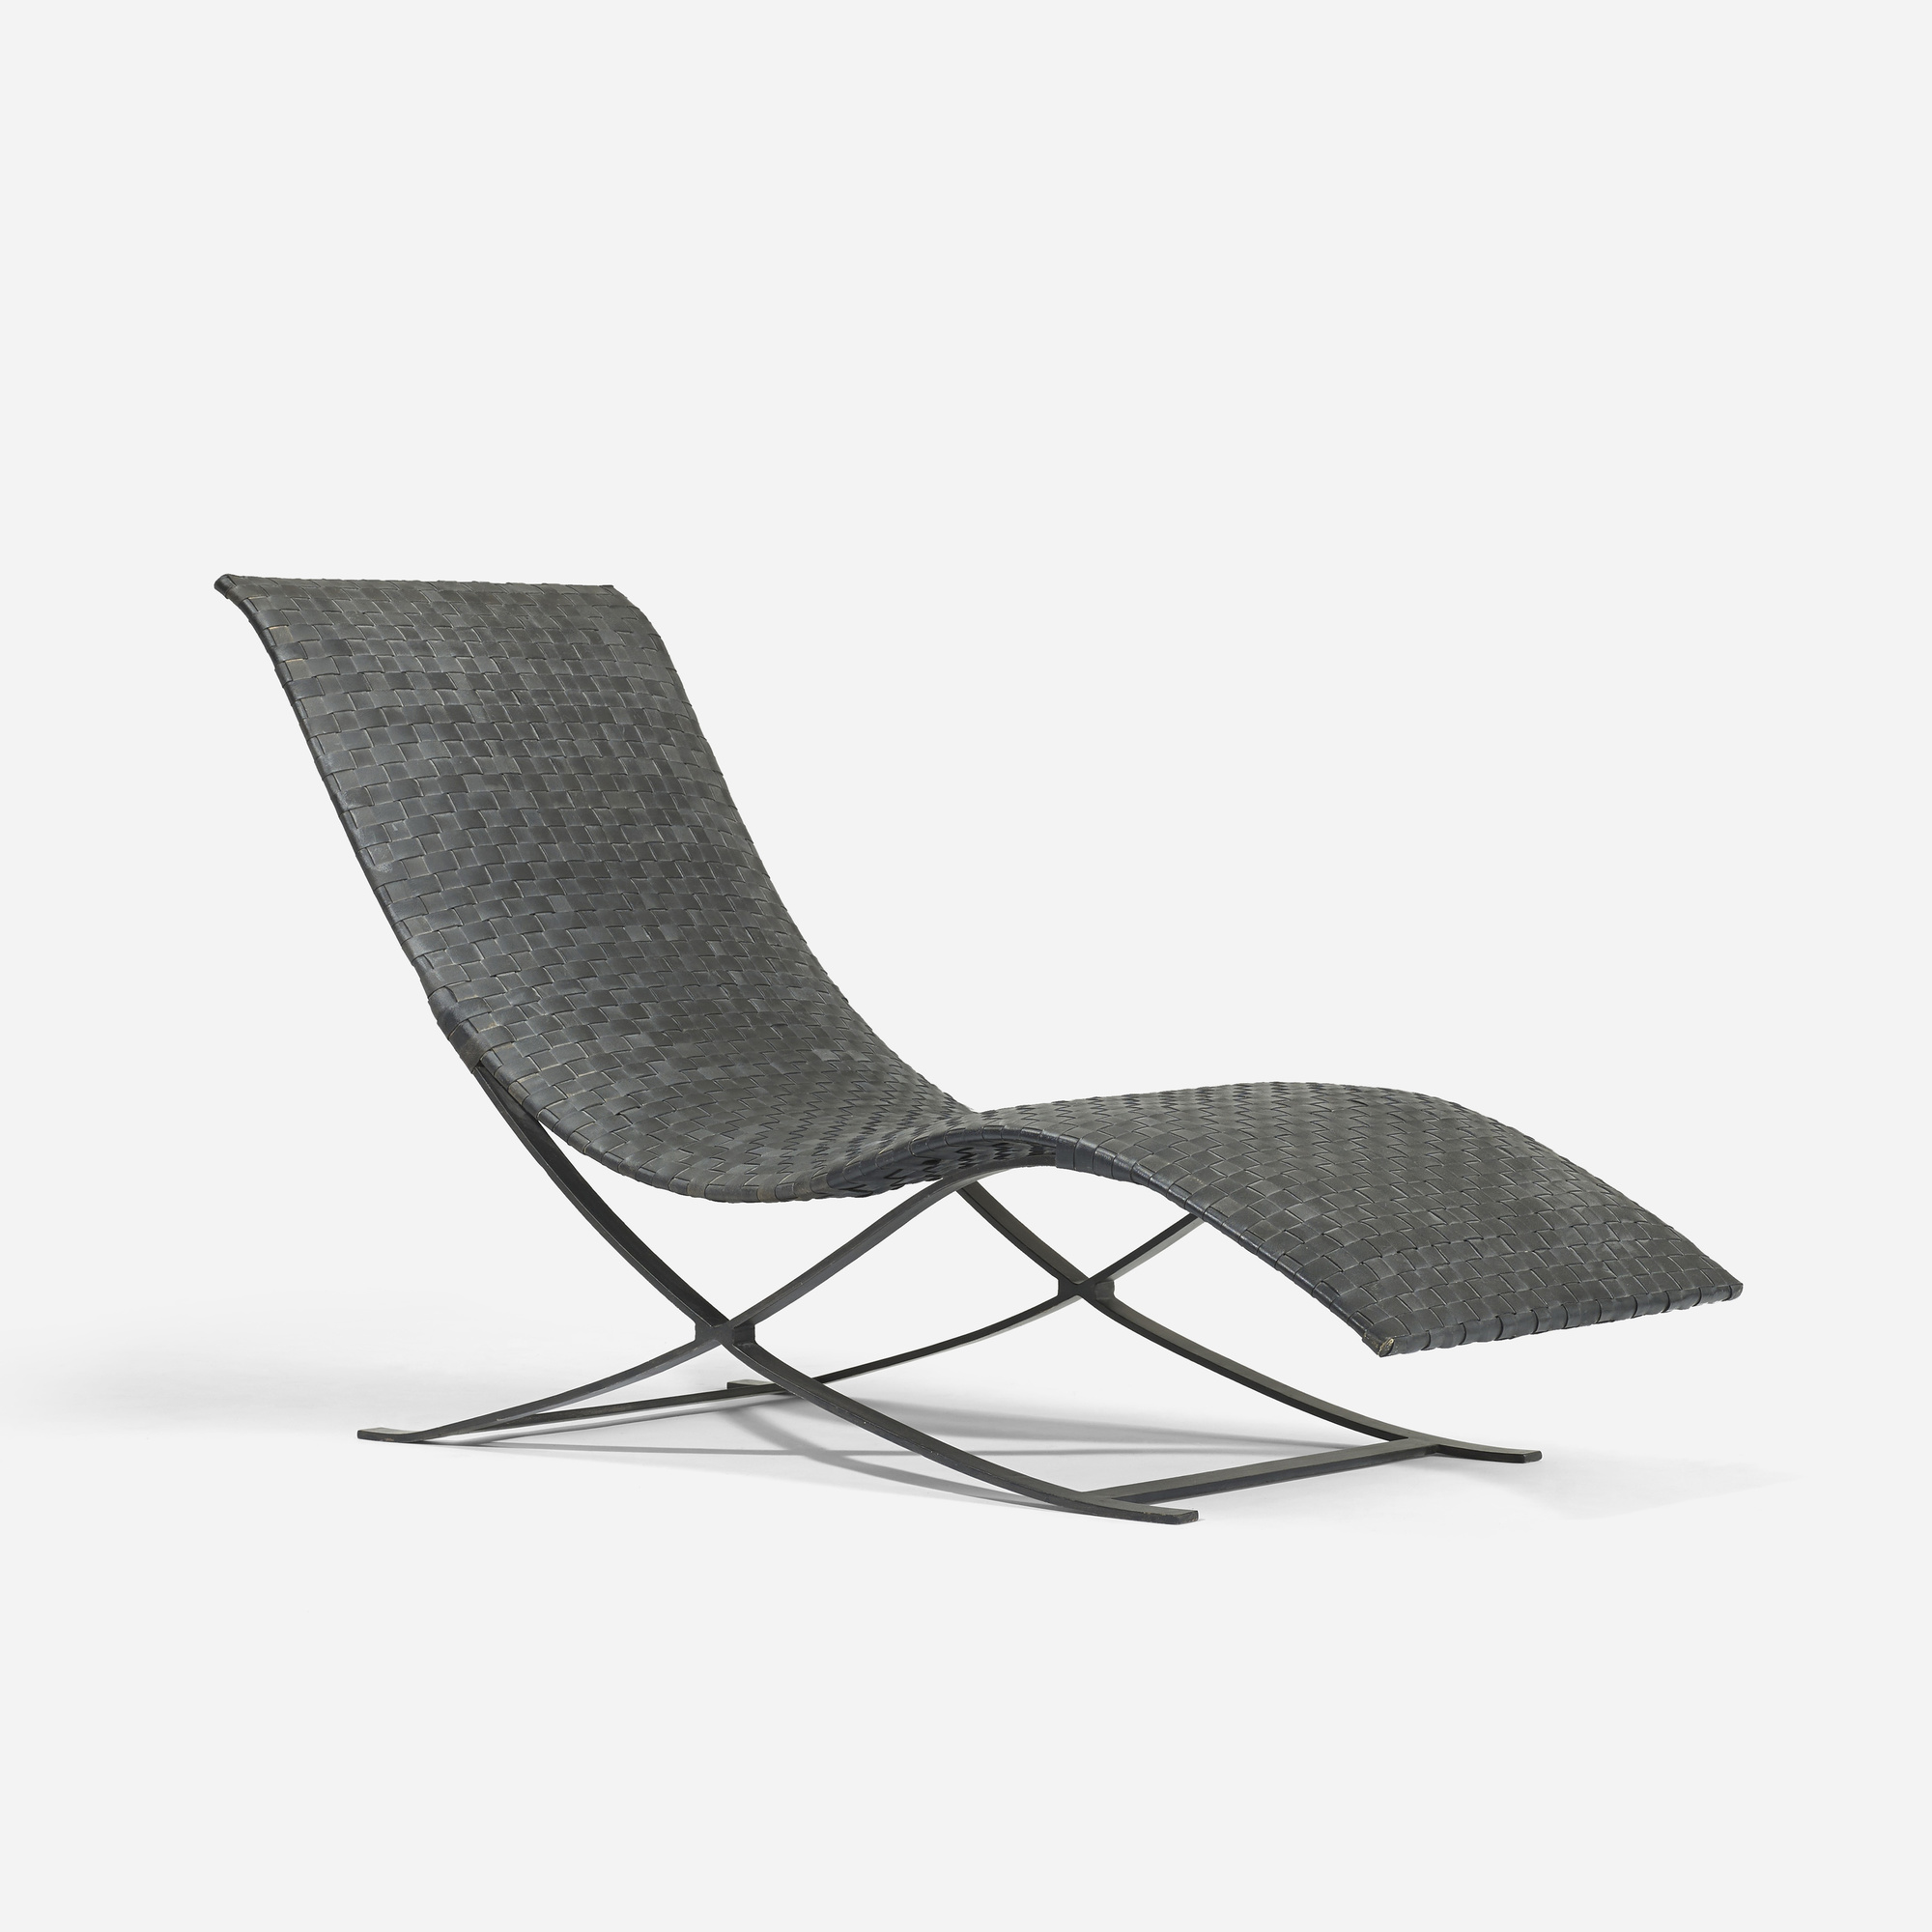 307: American / chaise lounge (1 of 3)